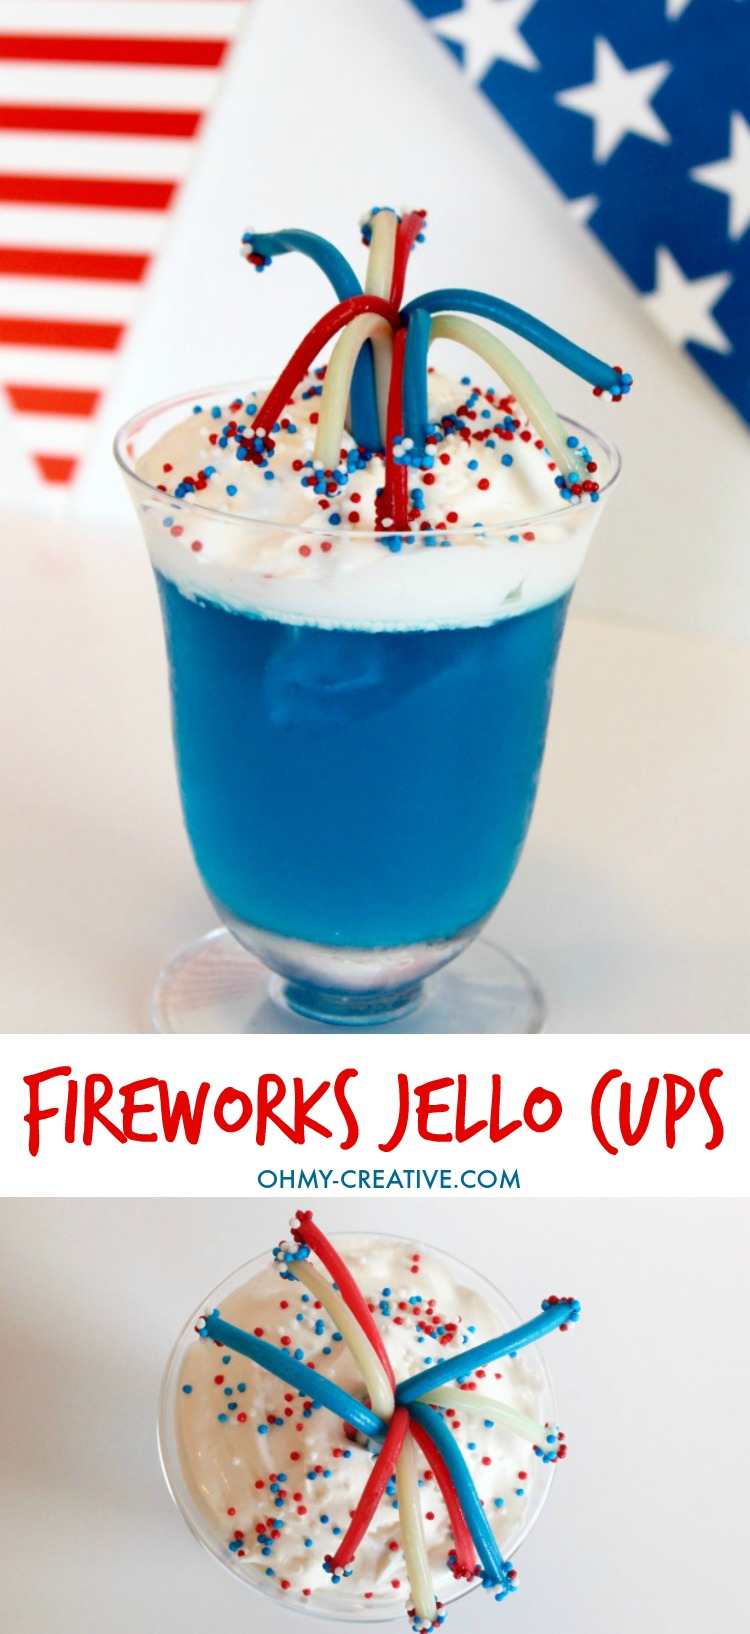 Sparklers and fireworks are a big part of any Fourth of July or any Patriotic Celebration! Try these 4th of July Dessert Fireworks Jello Cups for your picnics and parties - a fun easy patriotic treat! | OHMY-CREATIVE.COM